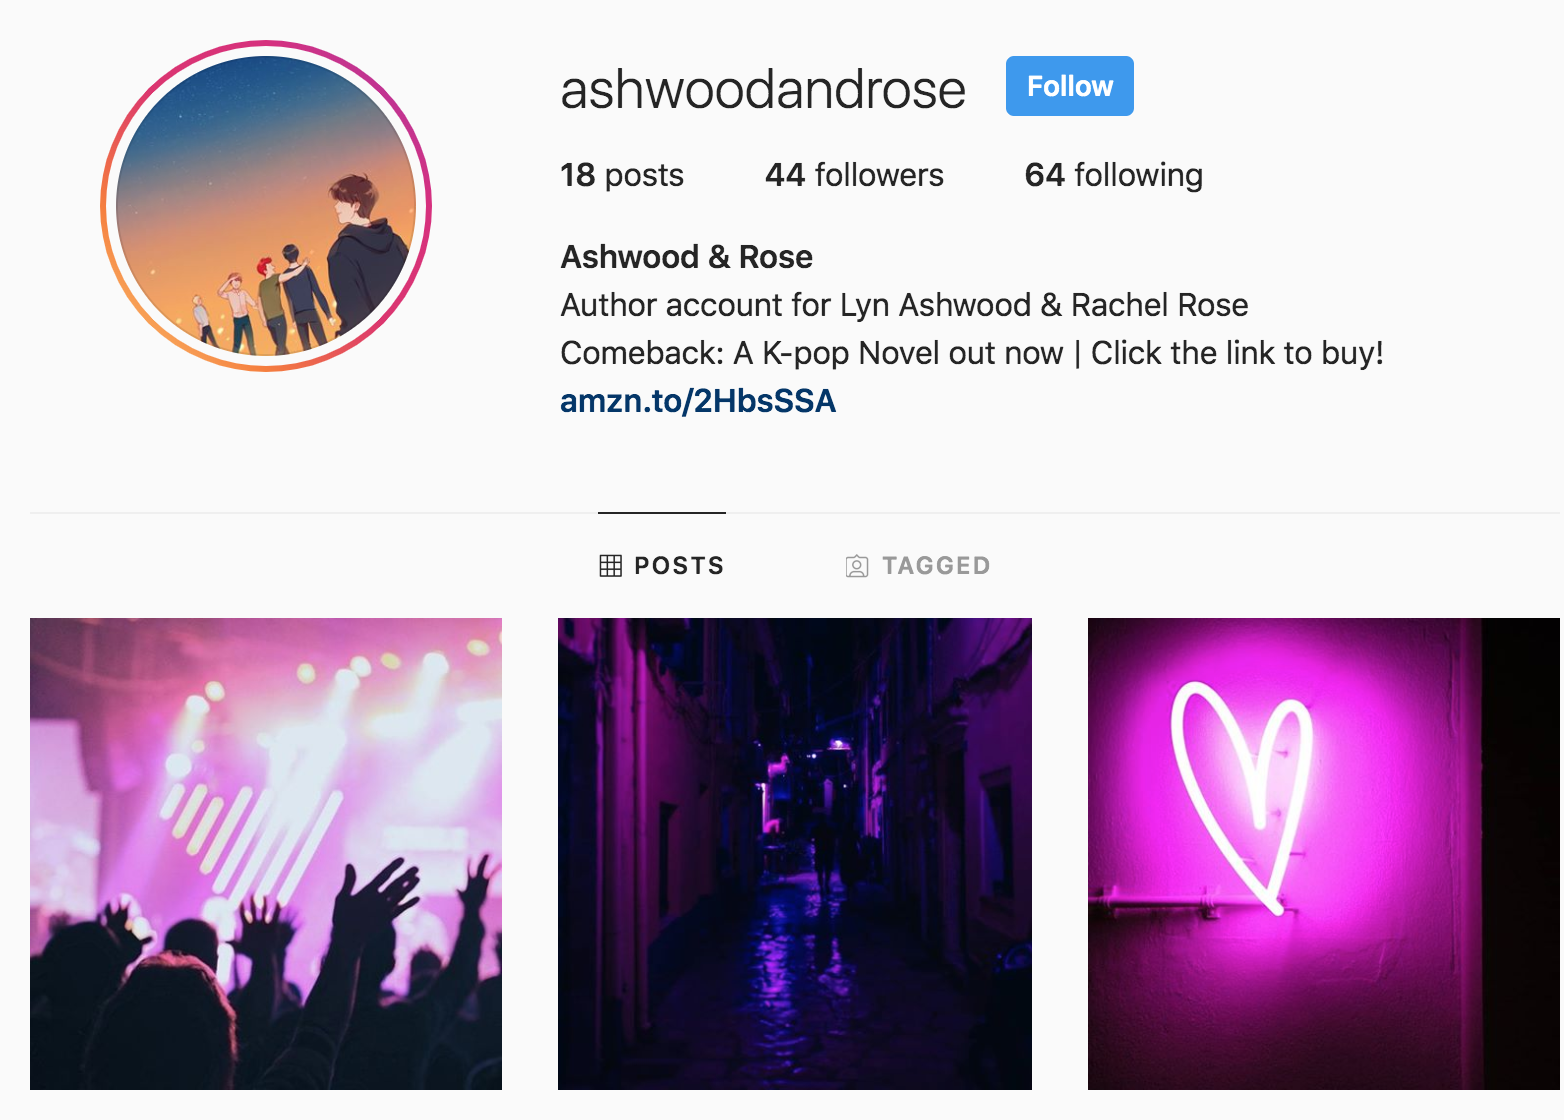 Ashwood & Rose Instagram